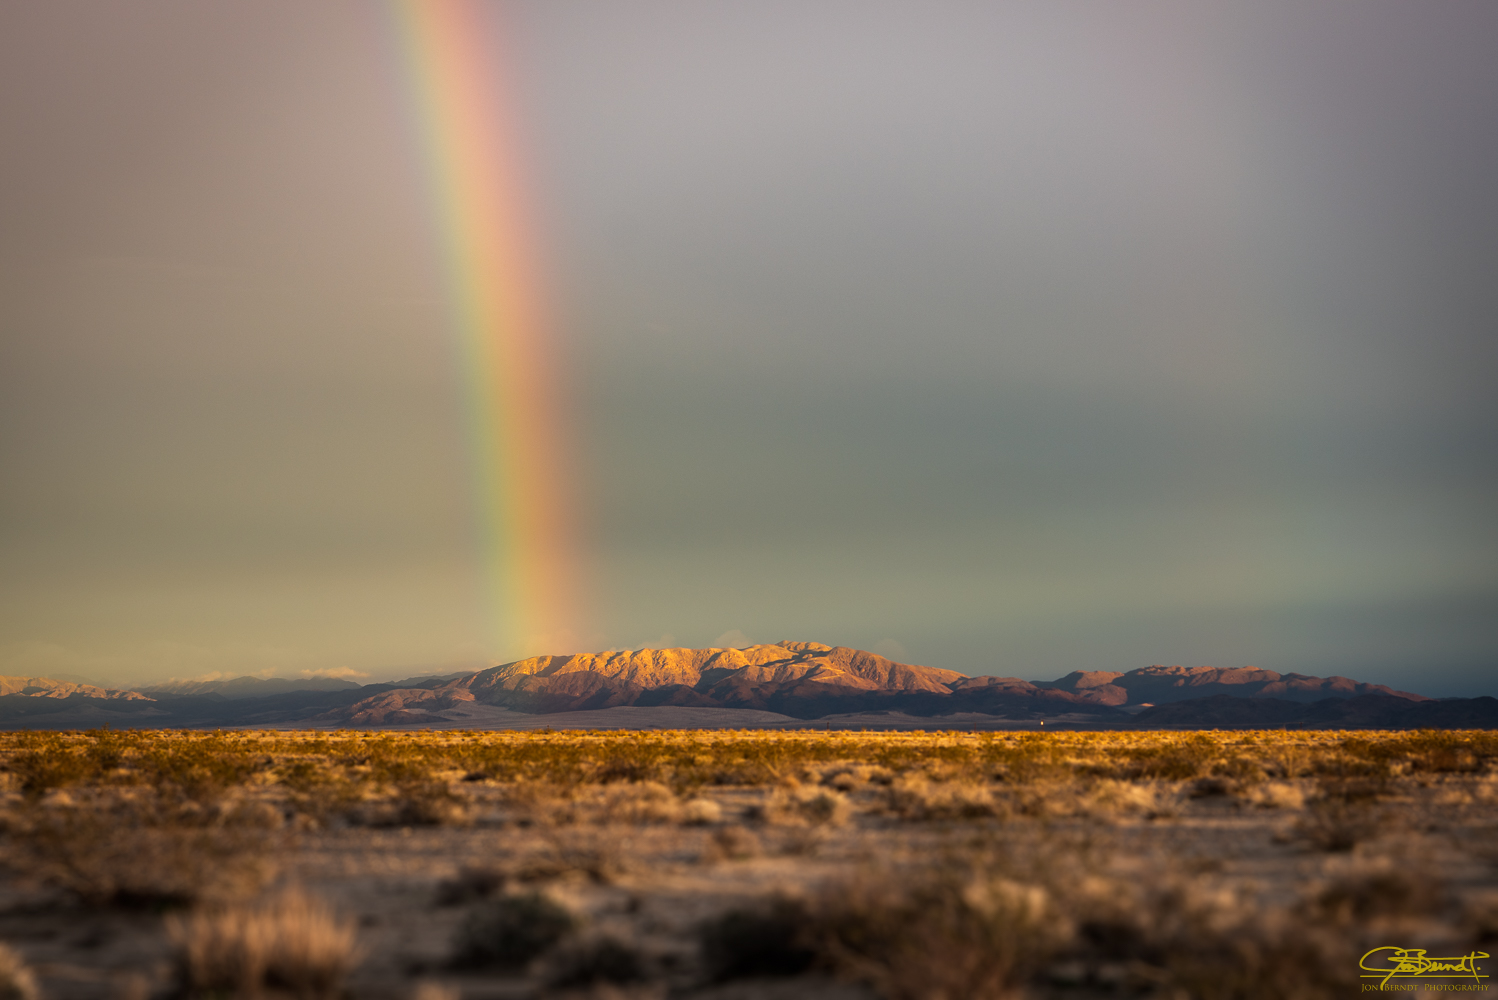 Early this year I traveled to visit family in Wonder Valley near Twentynine Palms, California. I happened to fly in during a huge rainstorm and over the next few days there was a lot of rain in southern California. One result was this rainbow over the Valley.   Click here  for information on ordering a print of this photograph.